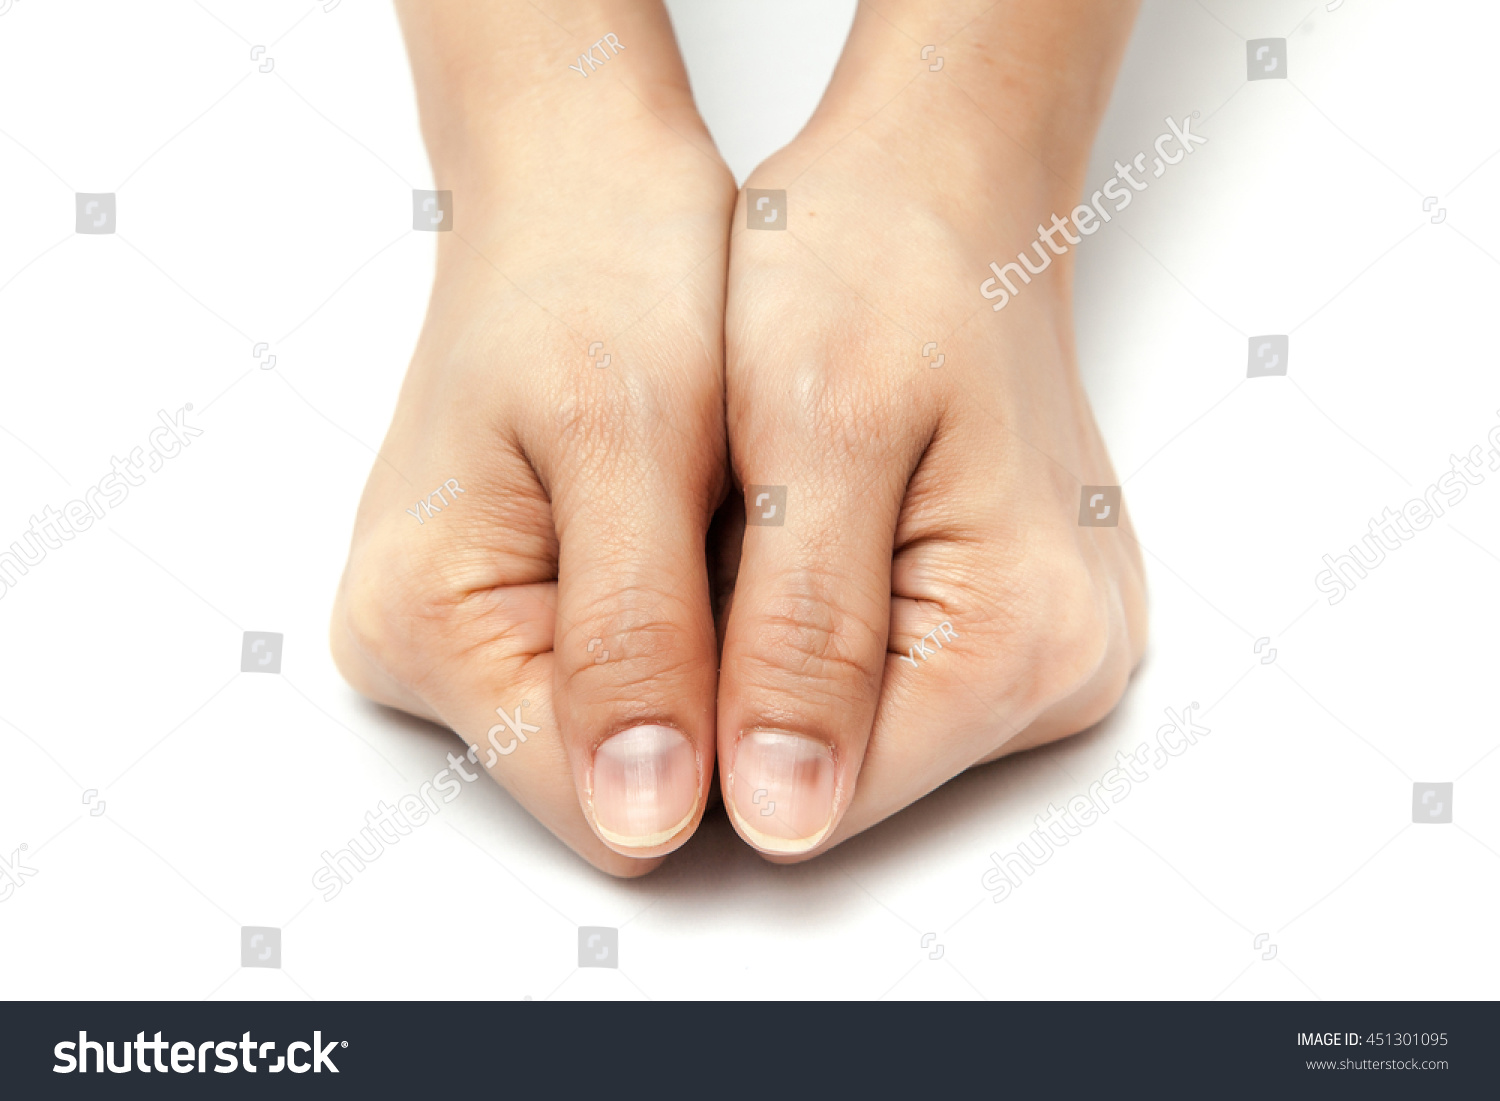 Dark Fingernails Patient After Take Chemotherapy Stock Photo ...